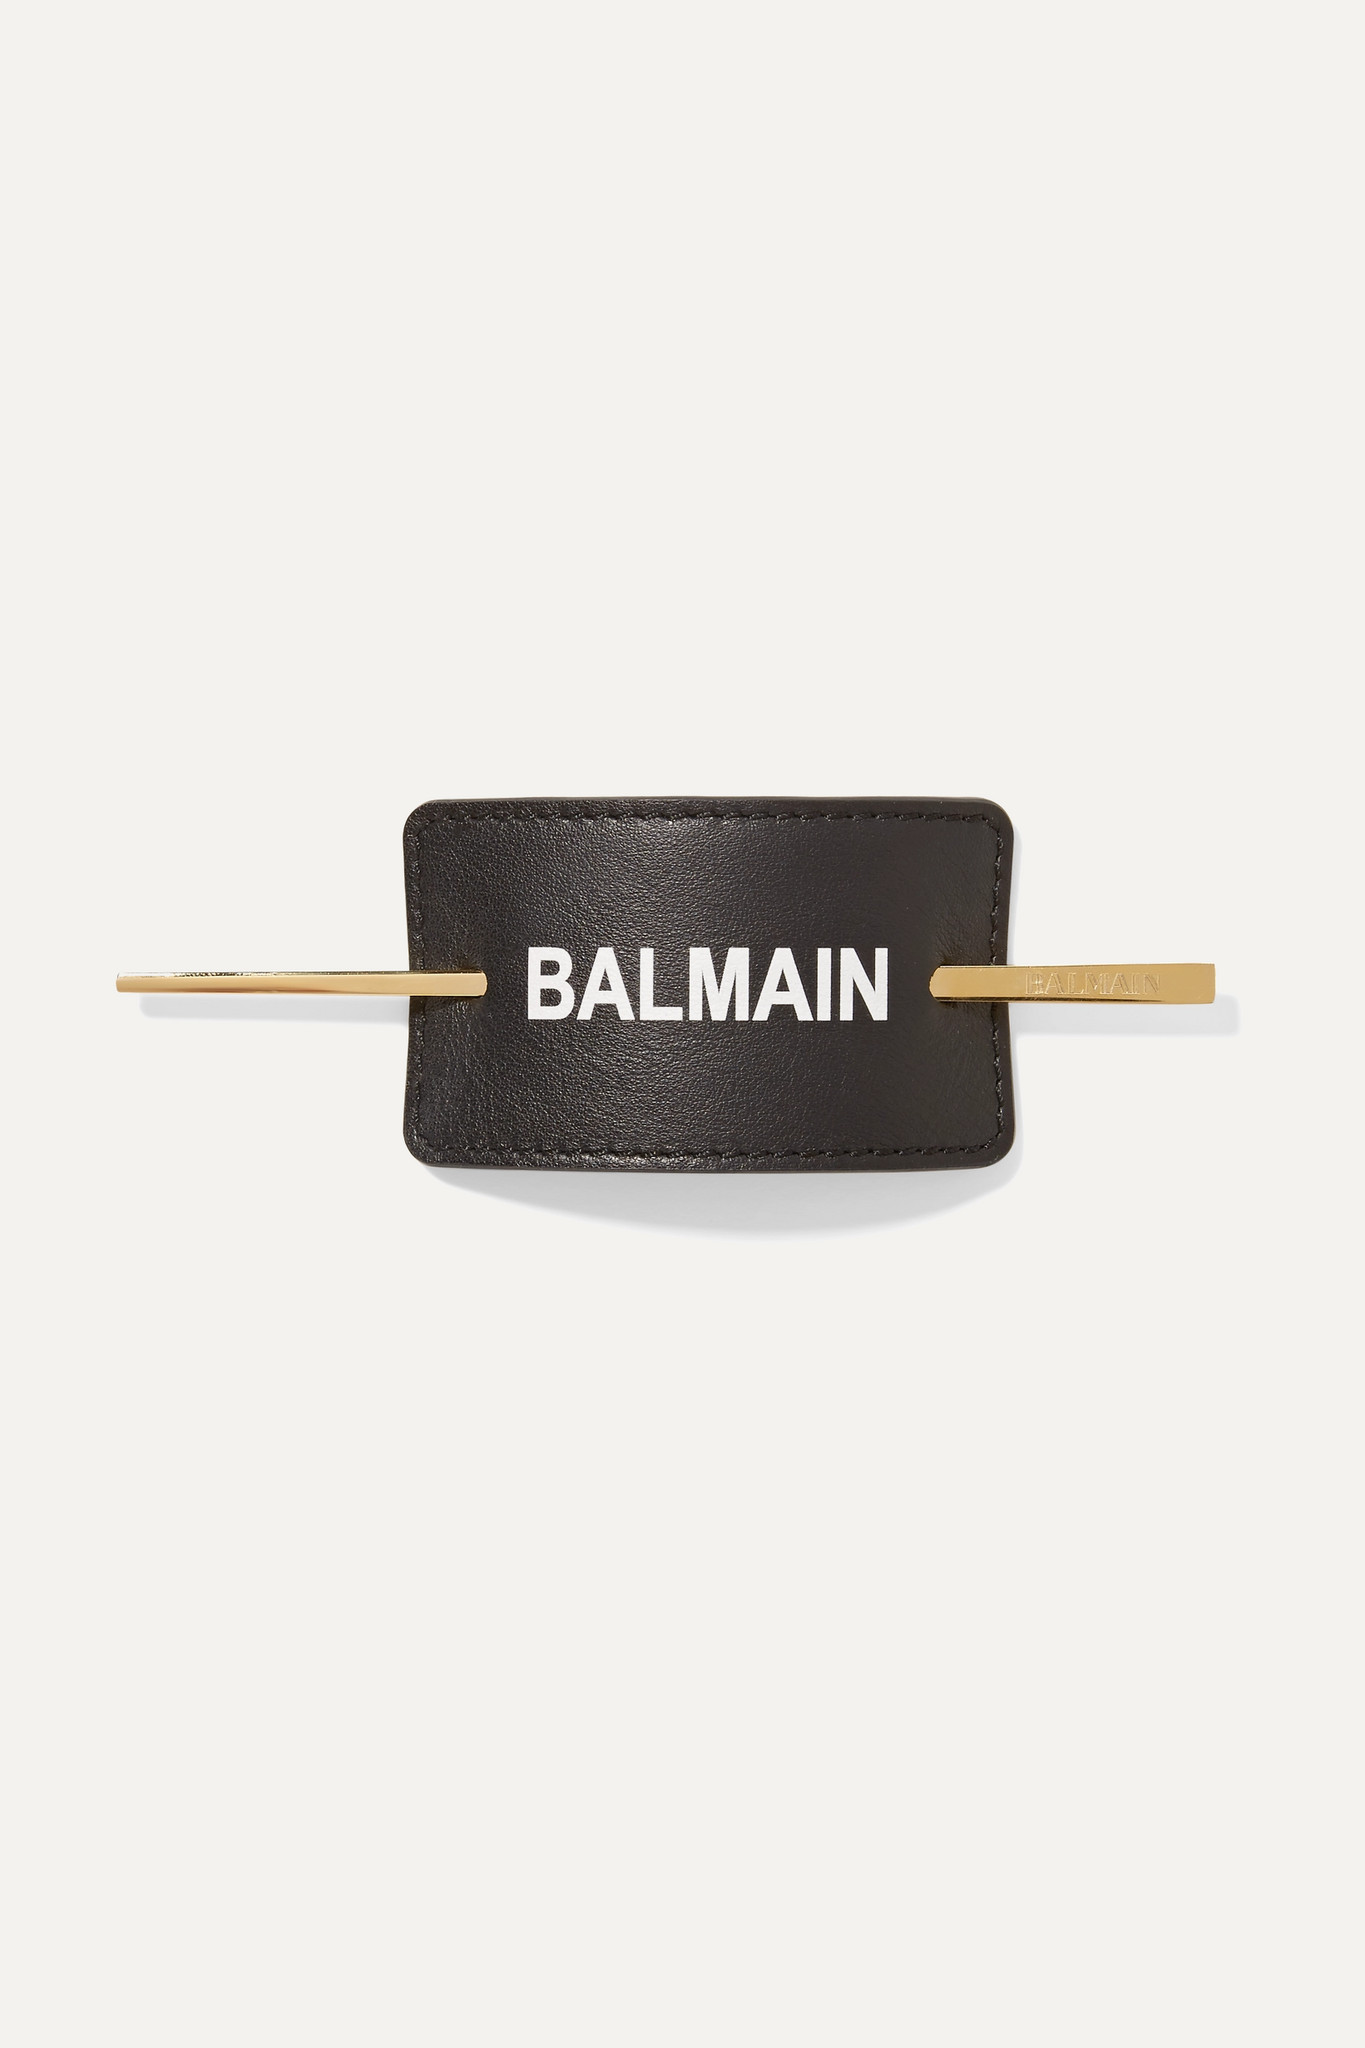 BALMAIN PARIS HAIR COUTURE - Gold-plated And Printed Leather Hair Pin - Black - one size